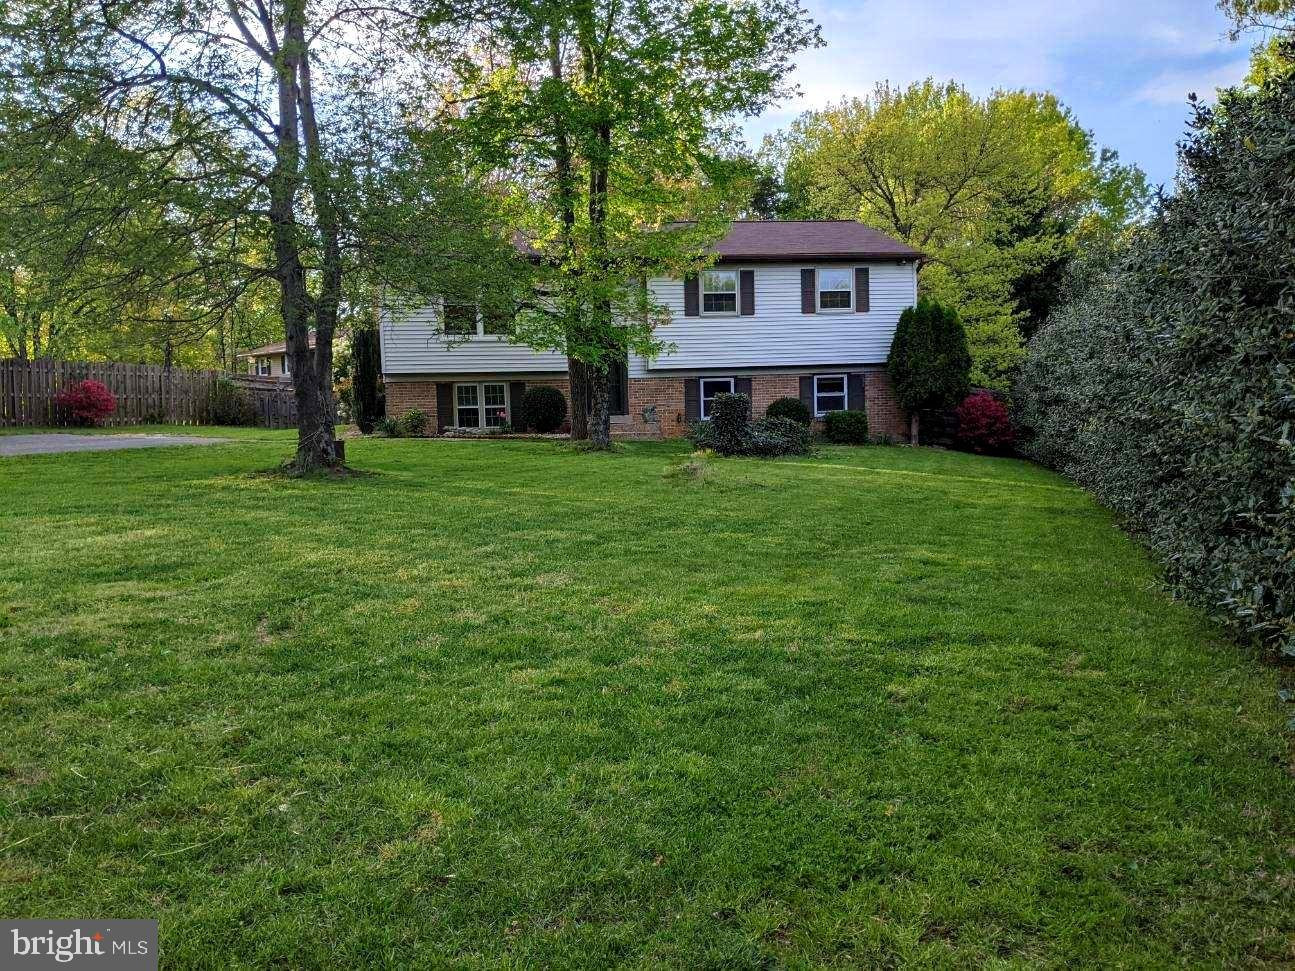 Highly sought after Nokesville (Prince William County zip: 20181) Active as of 4/23/2021... No HOA.  All Offers will be Responded to by the following Business day.... Welcoming Brick and Siding split foyer with updated Kitchen, Stainless Steel electric appliances, Large Living Room with Double Windows, Formal Dining Room w/crown molding, chair rail and French doors (with built in retractable mini blinds) leading to Screened Porch with stairs to large Level privately fenced Backyard overlooking your Apple and Pear trees while enjoying summer fun in the above ground Swimming Pool (equipment conveys) on .6488 acre corner lot.  Owner's Suite with Full Bath (shower/tub), 2 additional Bedrooms and 1 Full Hall Bathroom (shower/tub) on the Upper Level.  Lower Level includes a Large Family room with Masonry Fireplace, Brick Hearth and Wood Stove insert.  This home is on a private Well and Septic, Septic perk is for 3 Bedroom.  That being said, this level includes a Full Bathroom (tub/shower), 1 additional Room with full window/Closet and a Huge Recreation room with walkout level door to Backyard.  Note that the Rec Room can be converted back into 2 separate good size Den/Offices.  Newer HVAC (SEER 13), Newer Roof (5-6 years old), Well Pump/Pressure Tank 2021.  Original (38 yr old) Septic Distribution Box replaced April 2021.  Asphalt Double wide Driveway easily fits up to 6 vehicles.  Home has both FiOS and Comcast service connections.  Built in 1983.  School Zone: Brentsville High School, Nokesville Middle School, Nokesville Elementary School.